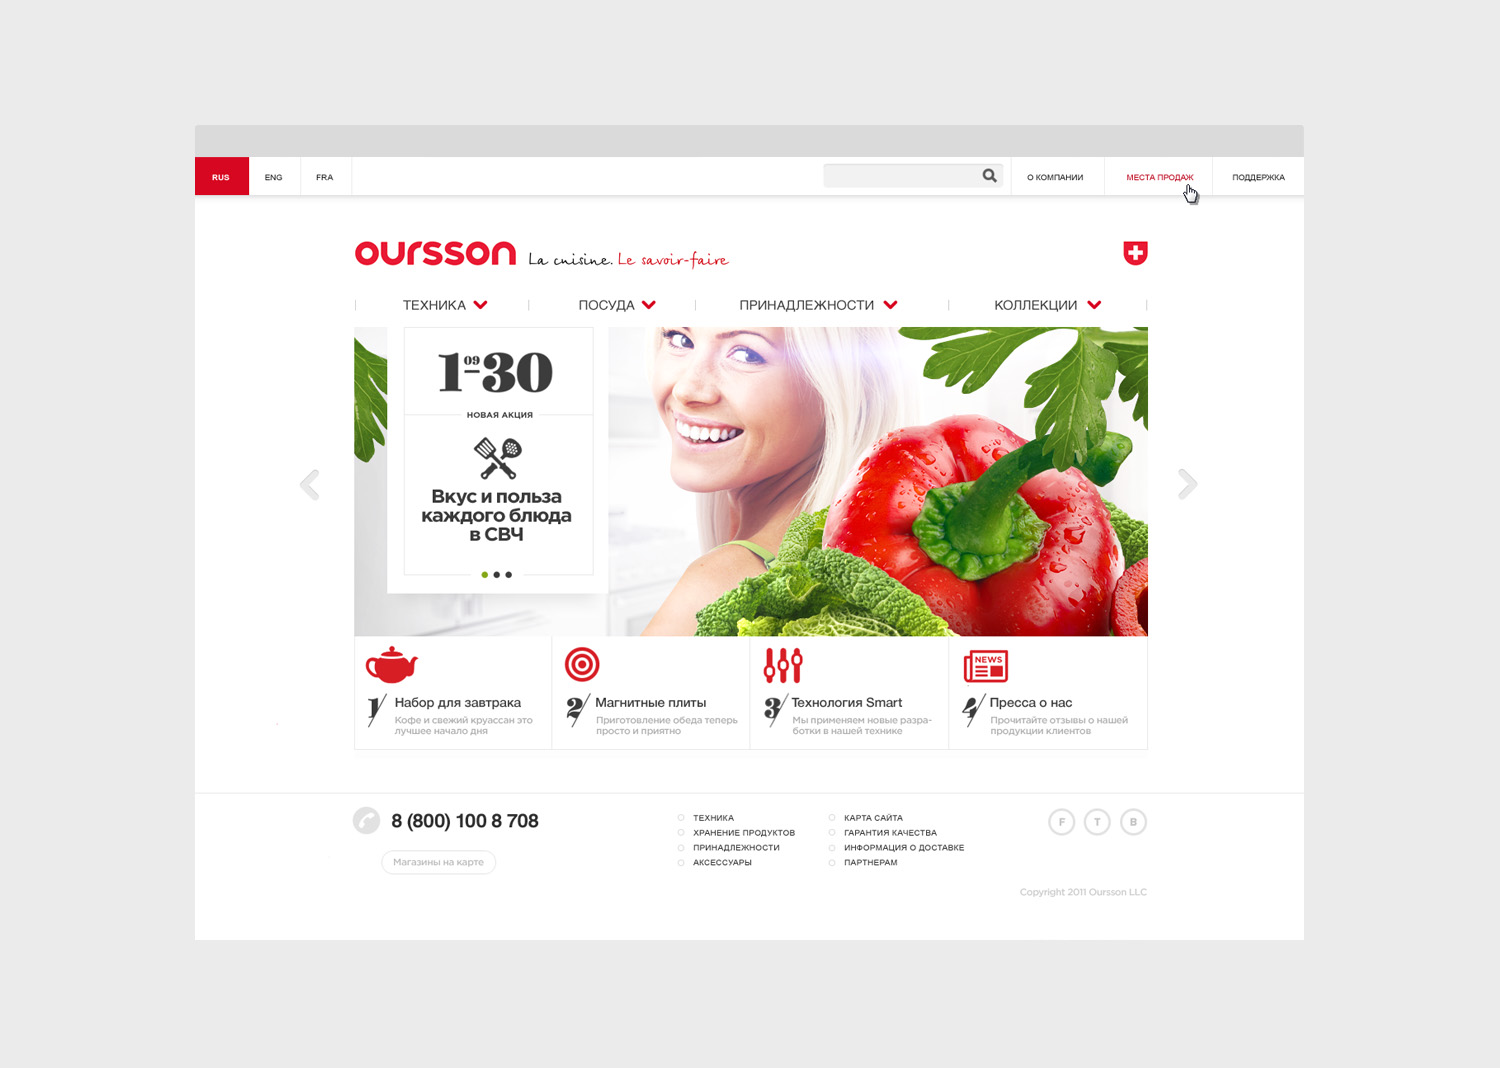 oursson_index_browser_01.jpg